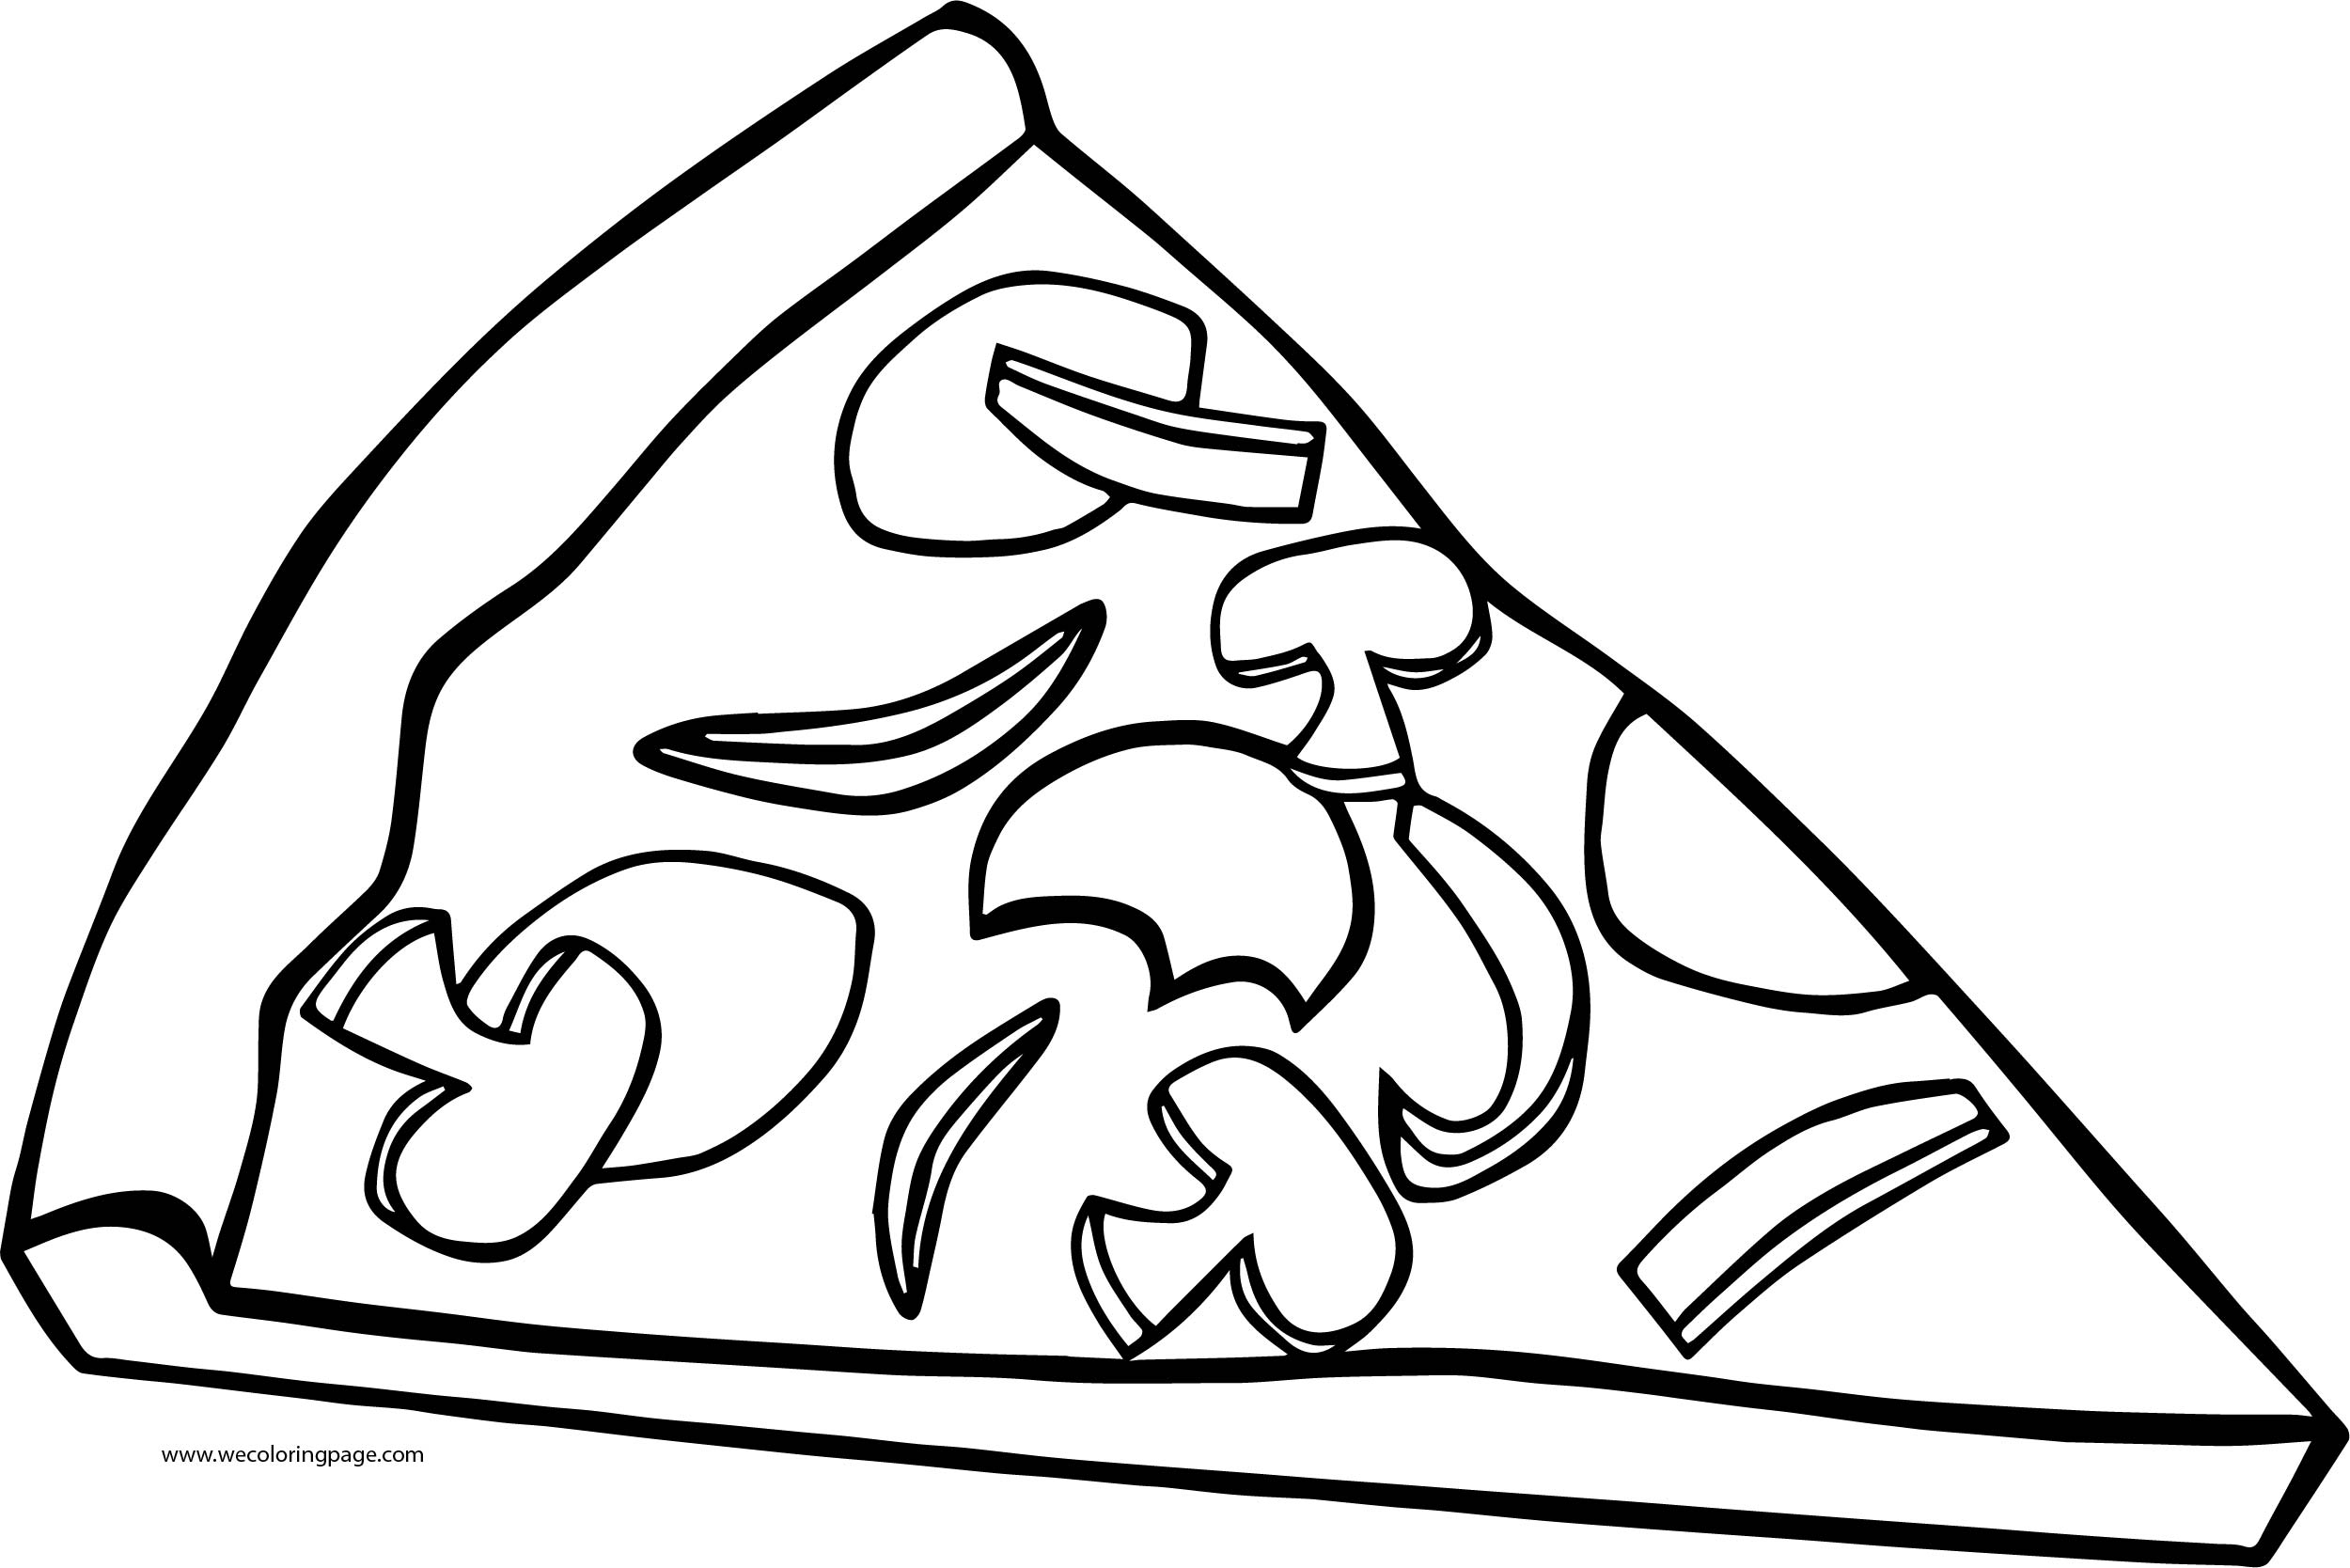 Pizza Coloring Page WeColoringPage 09